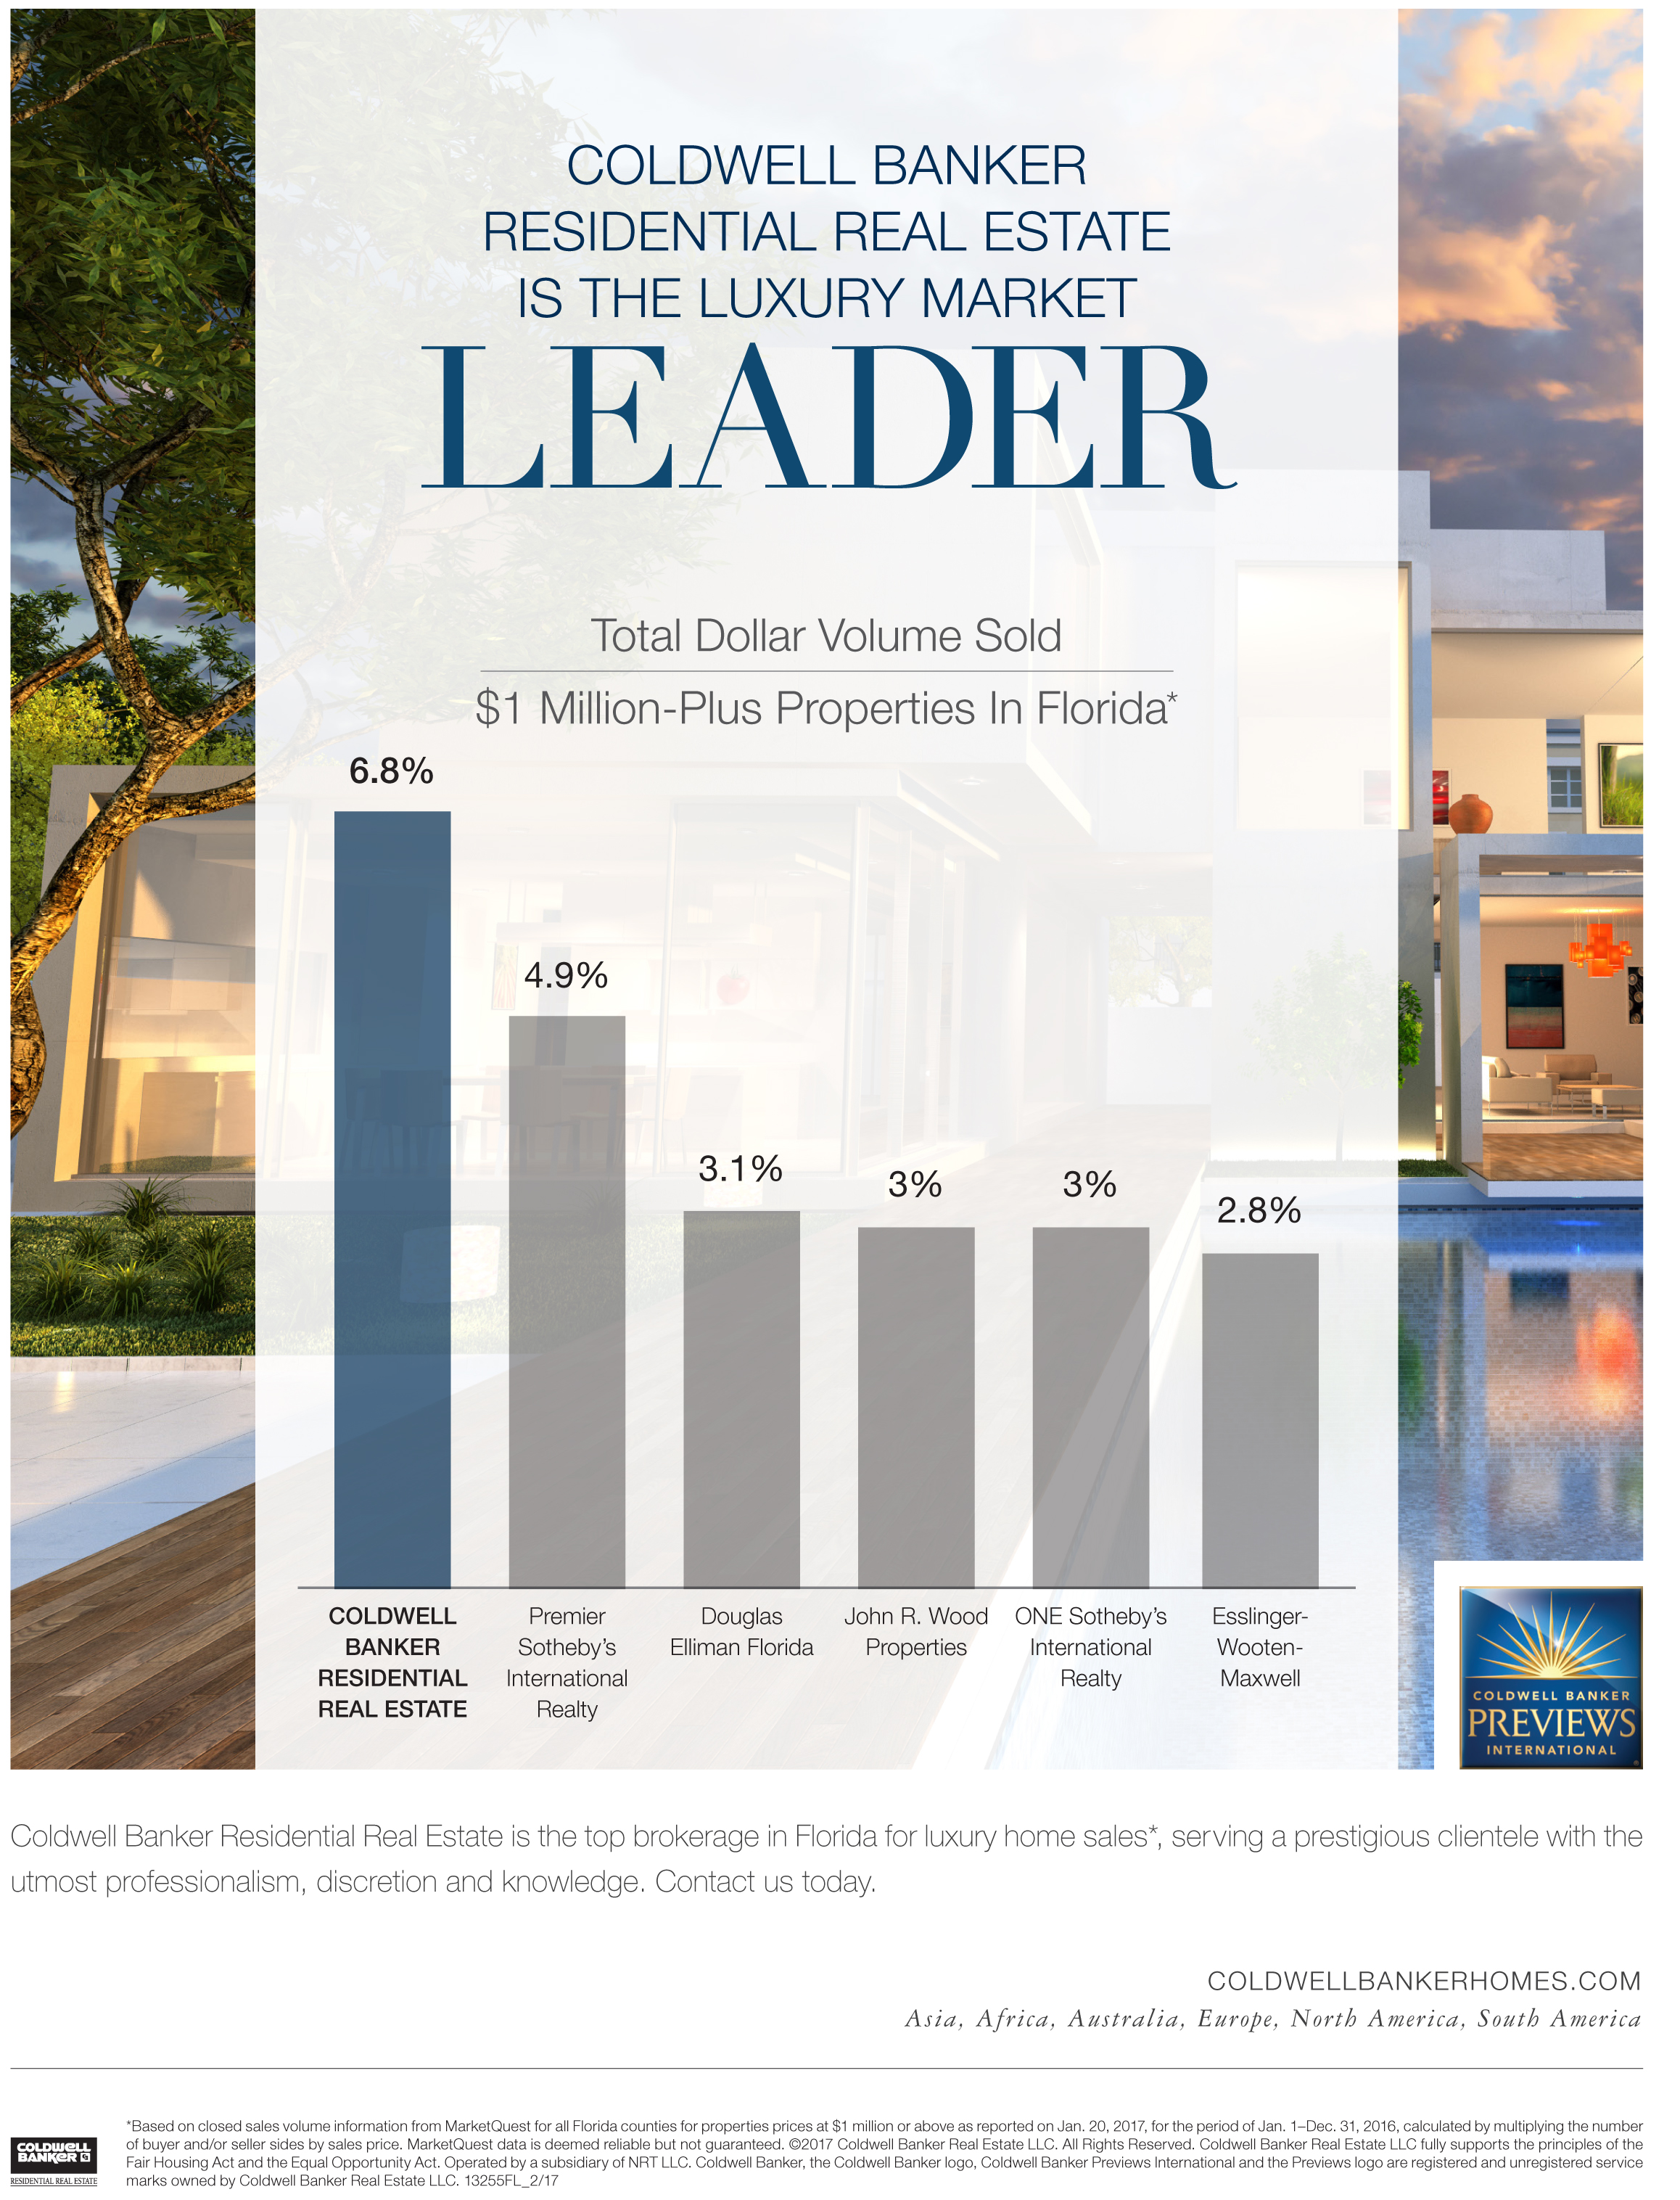 Coldwell Banker Leads in Luxury Real Estate